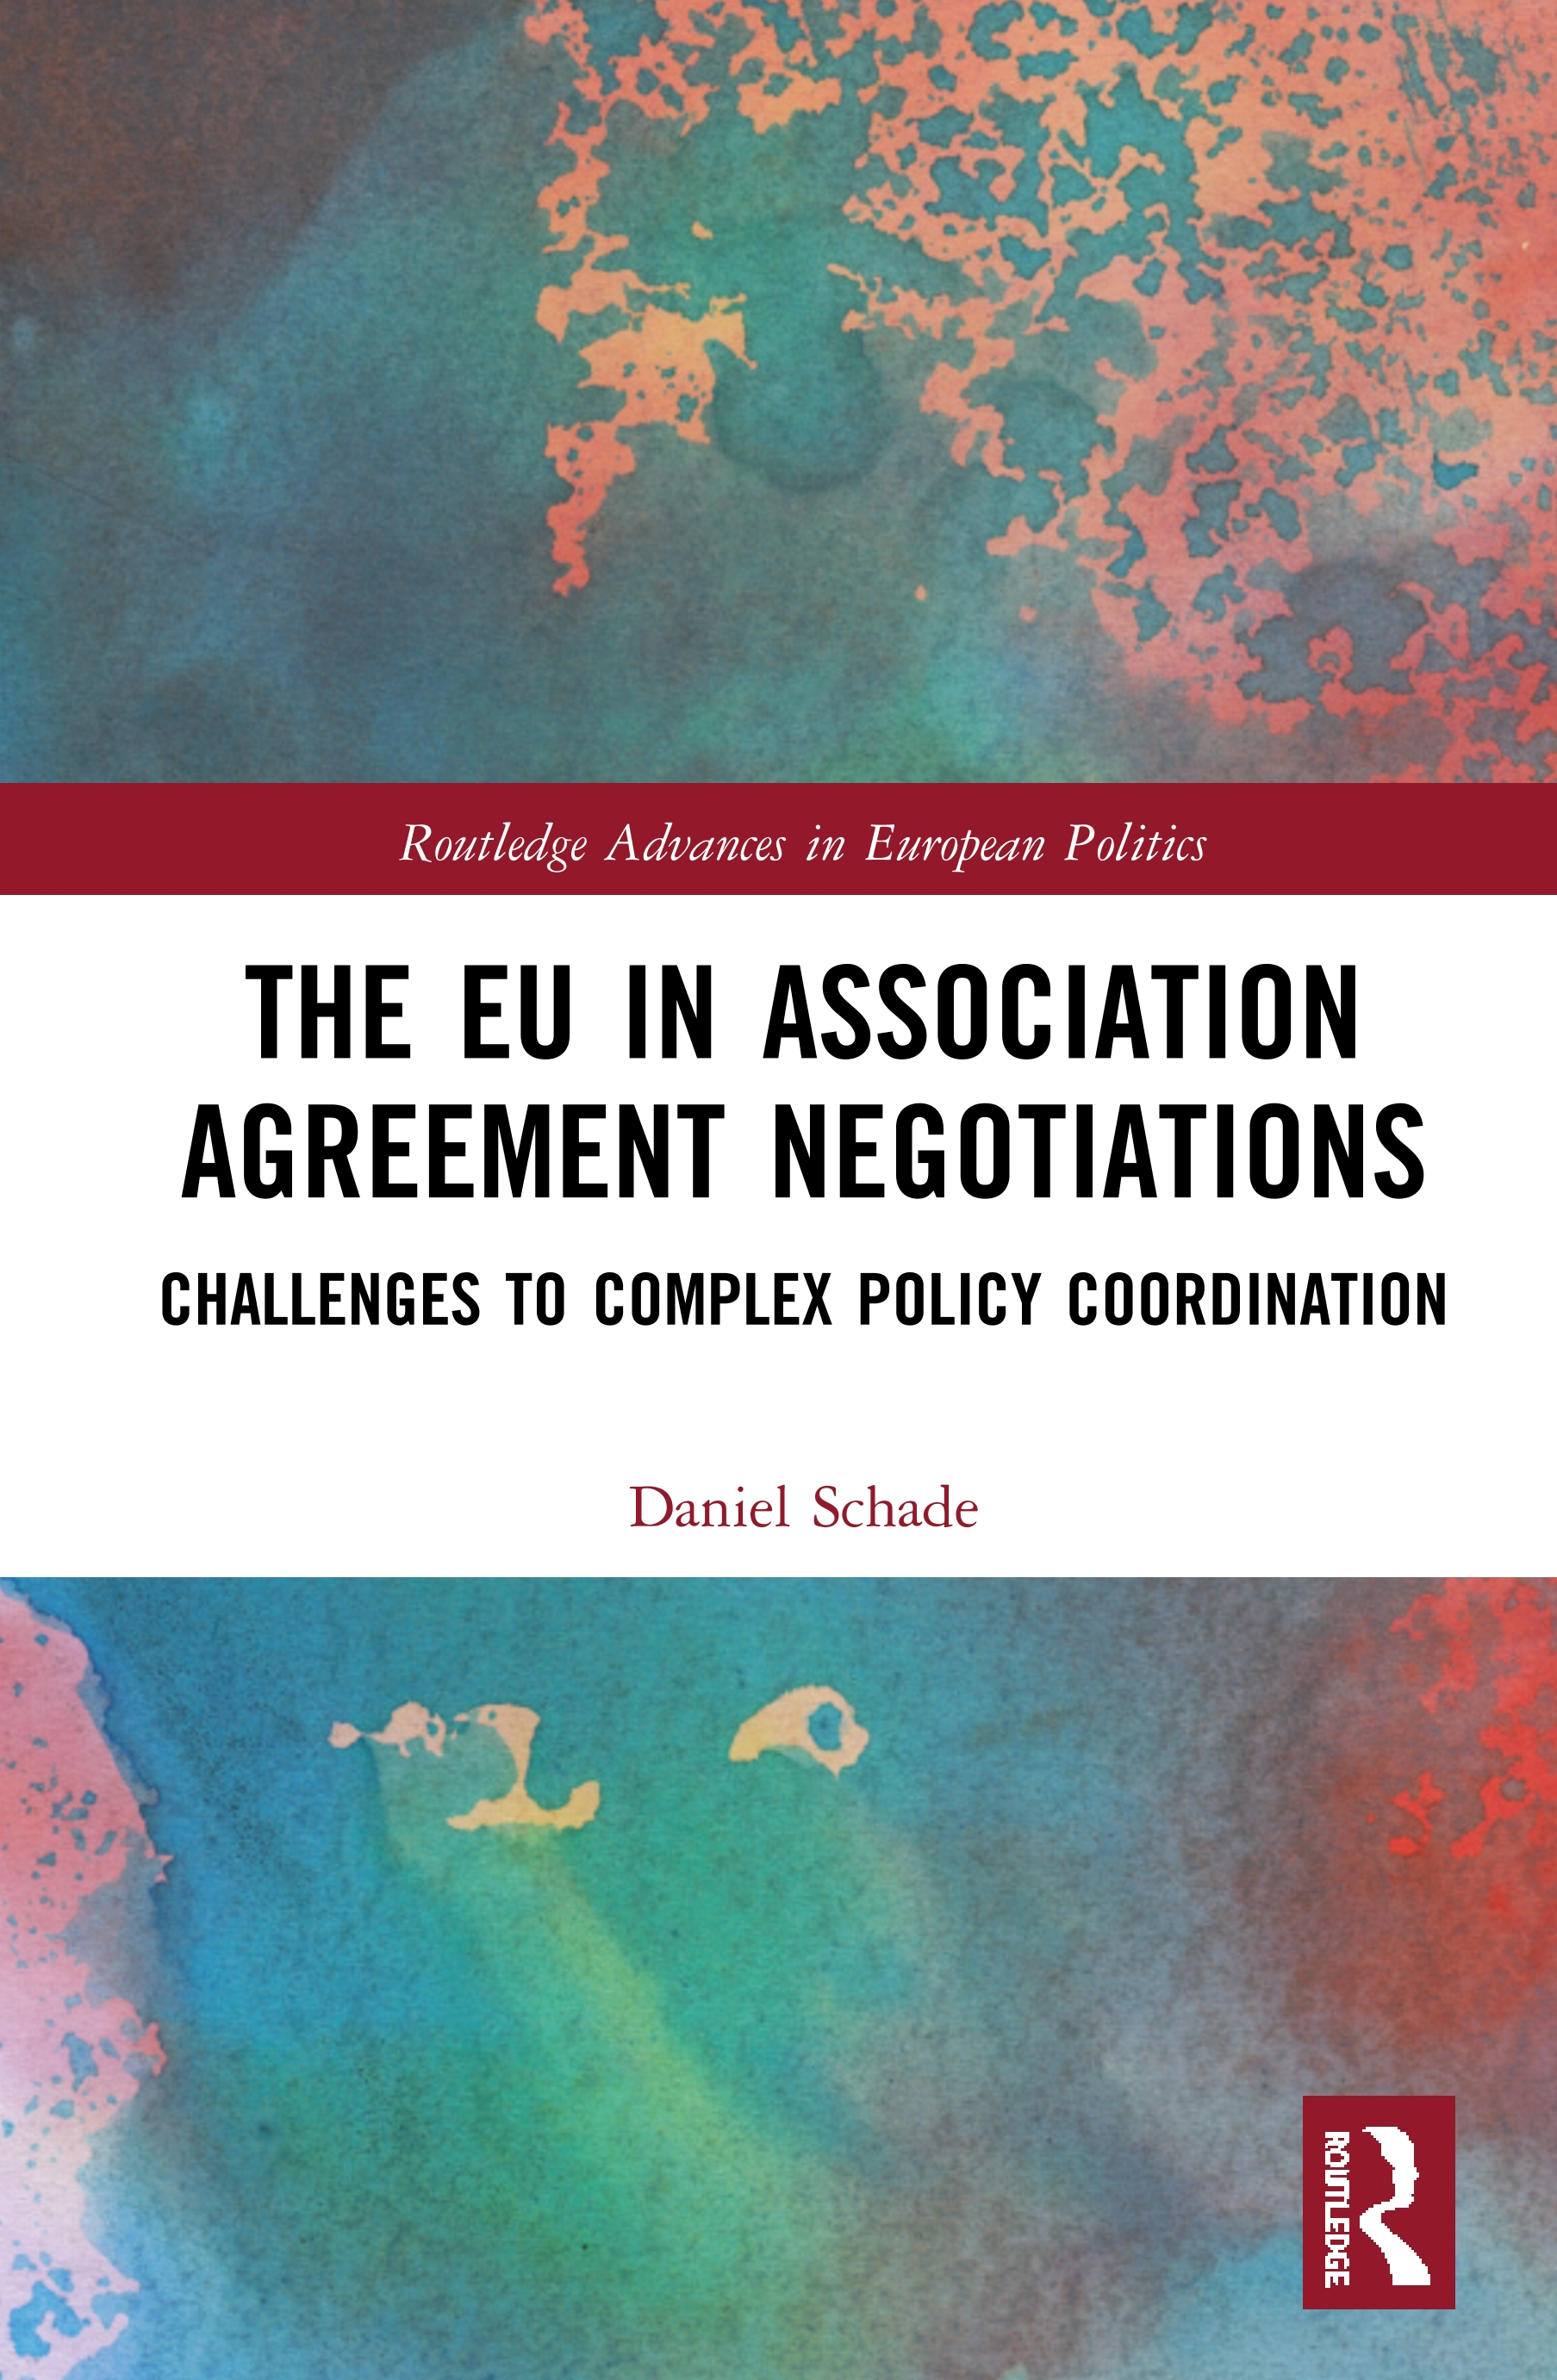 The EU in Association Agreement Negotiations: Challenges to Complex Policy Coordination book cover